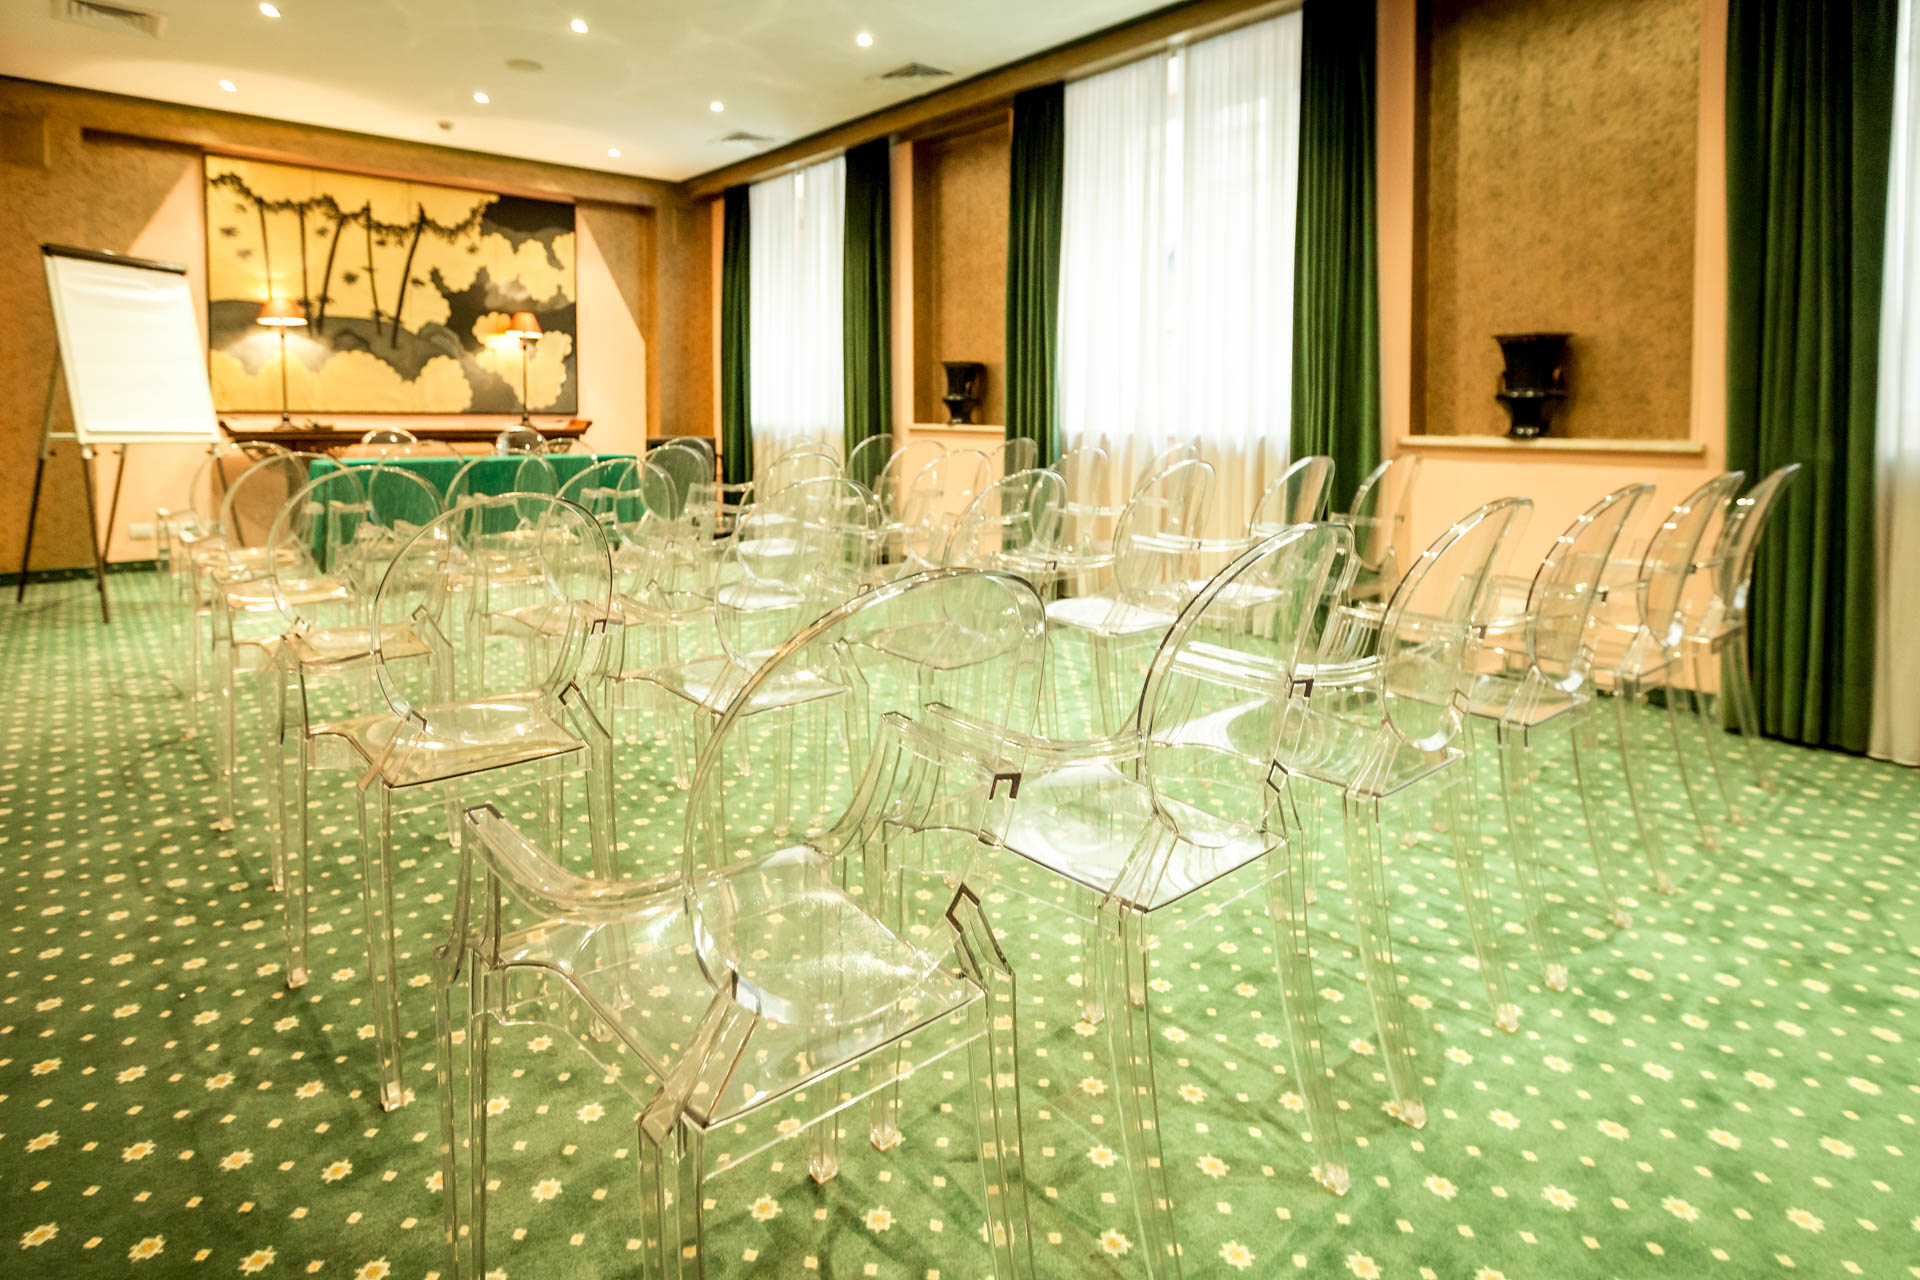 The Lagrange meeting room